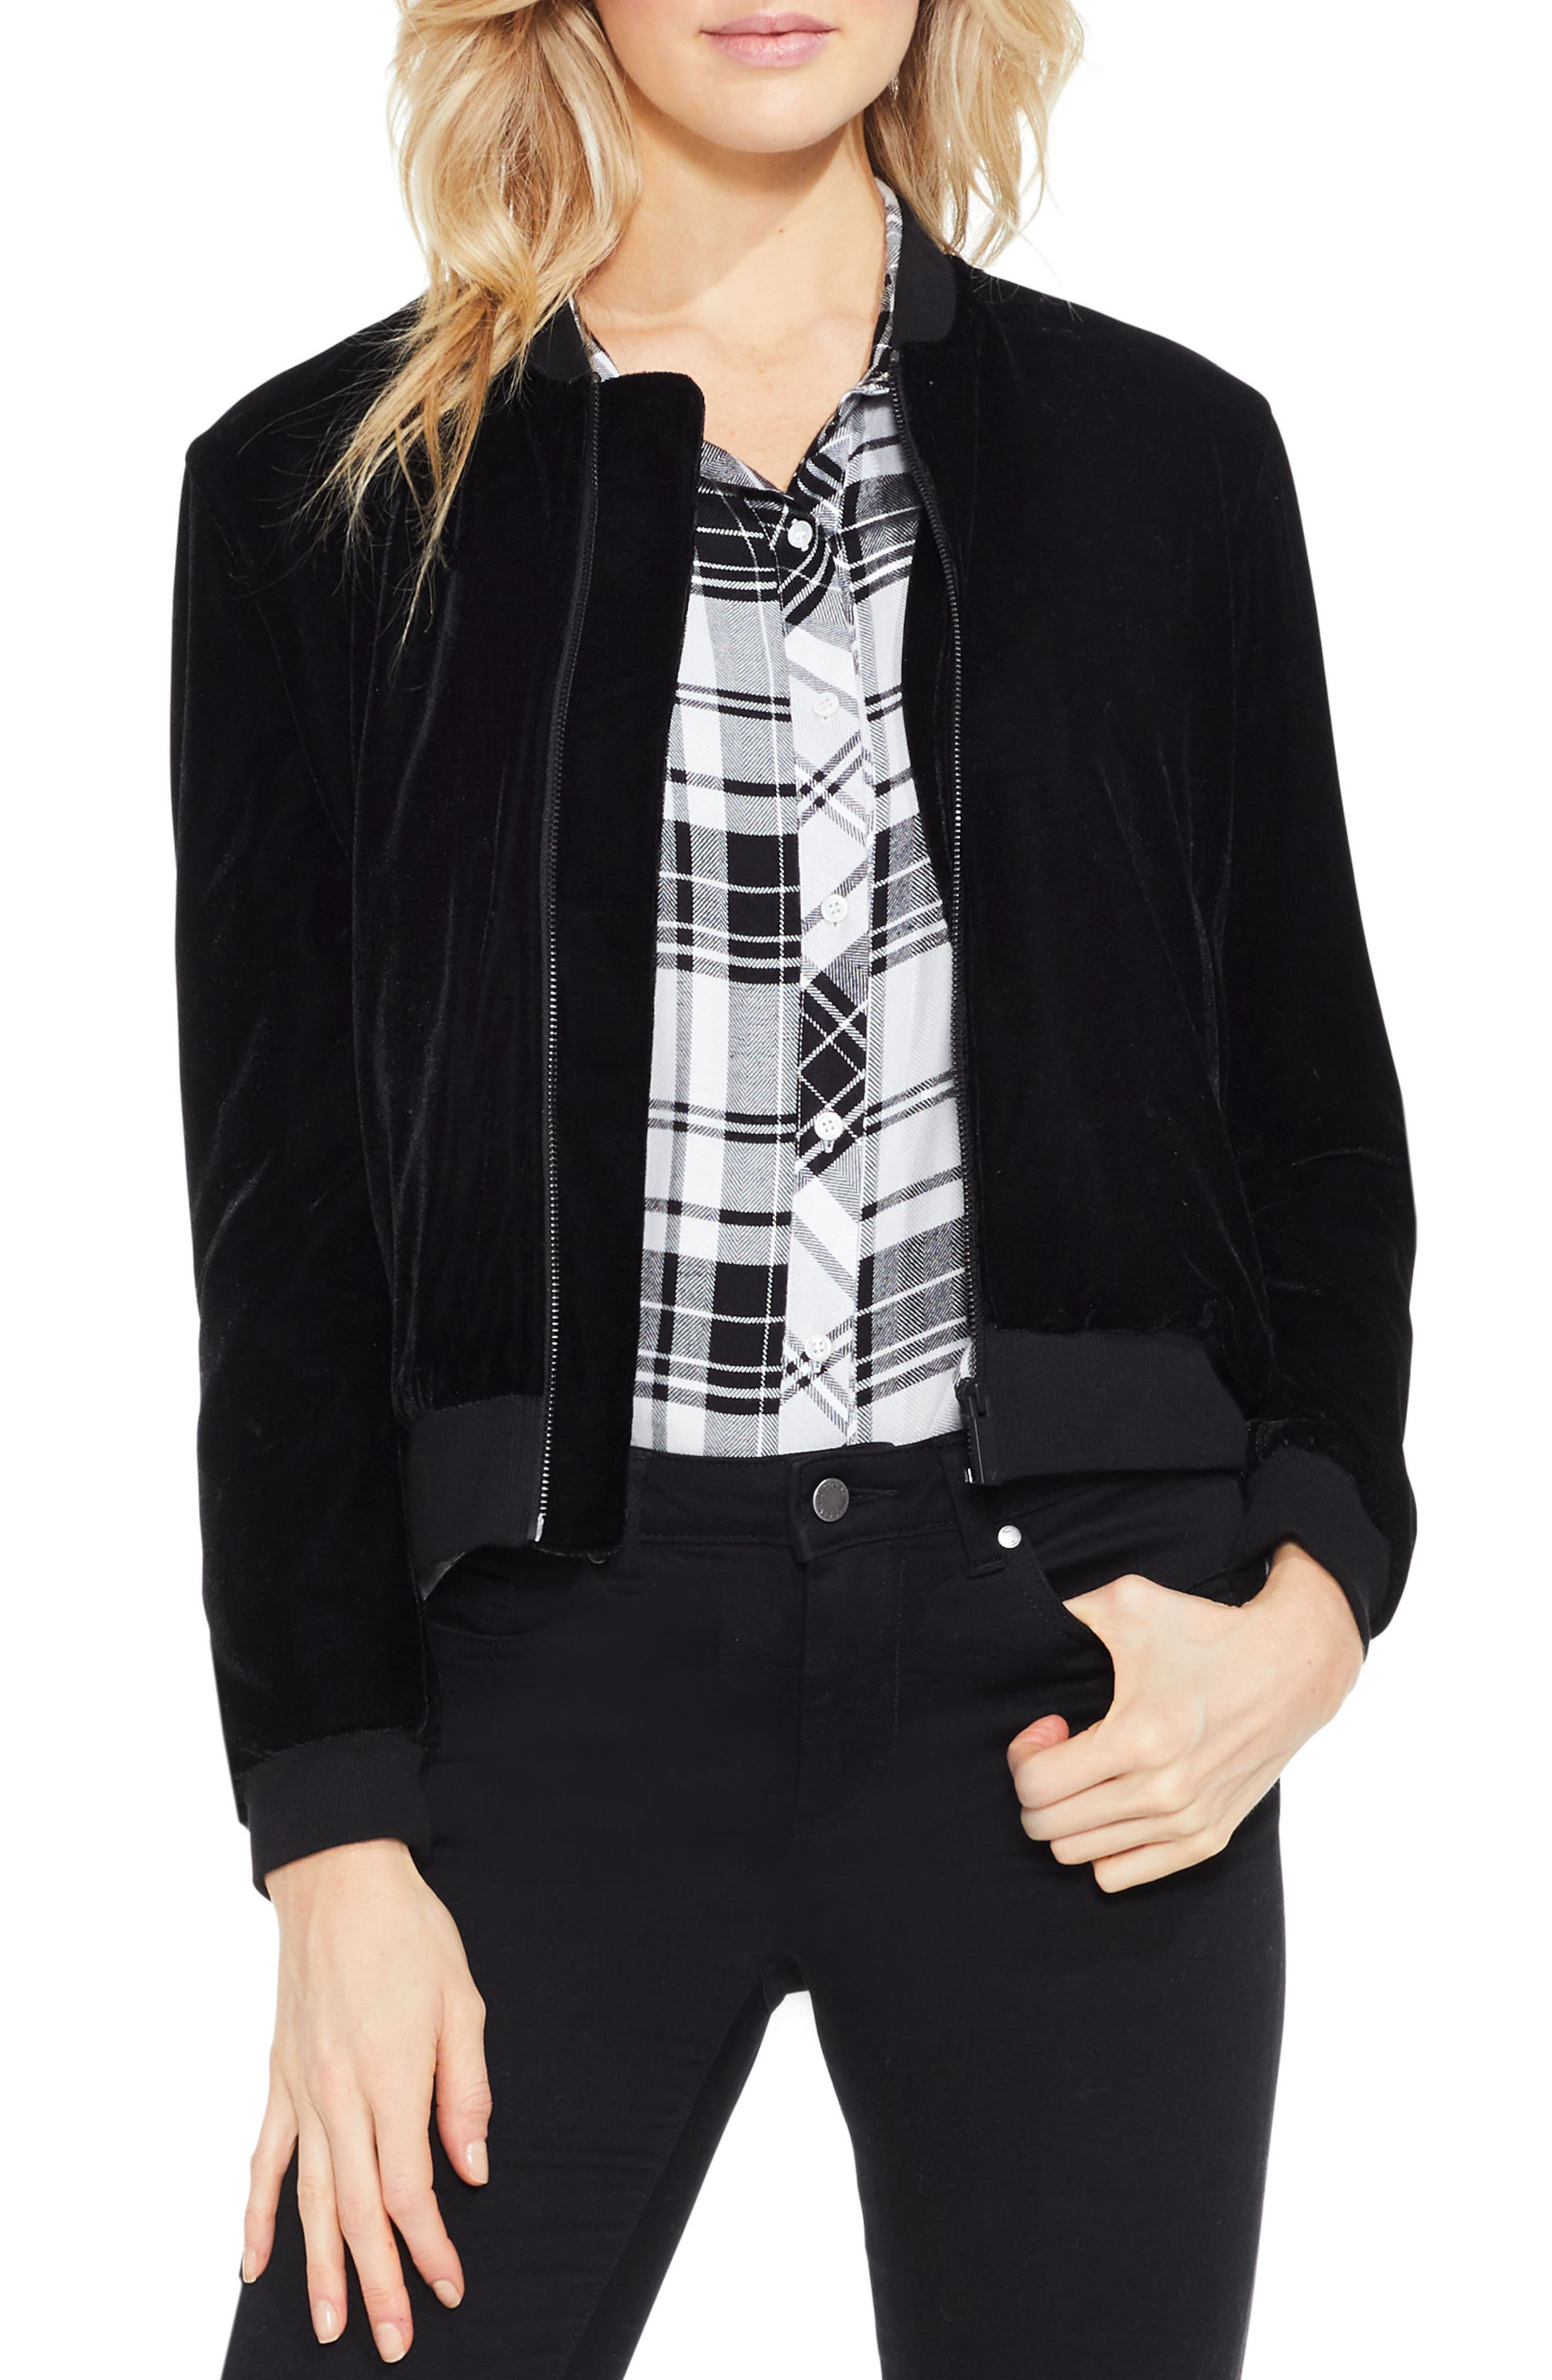 Alternate Image 1 Selected - Two by Vince Camuto Velvet Bomber Jacket